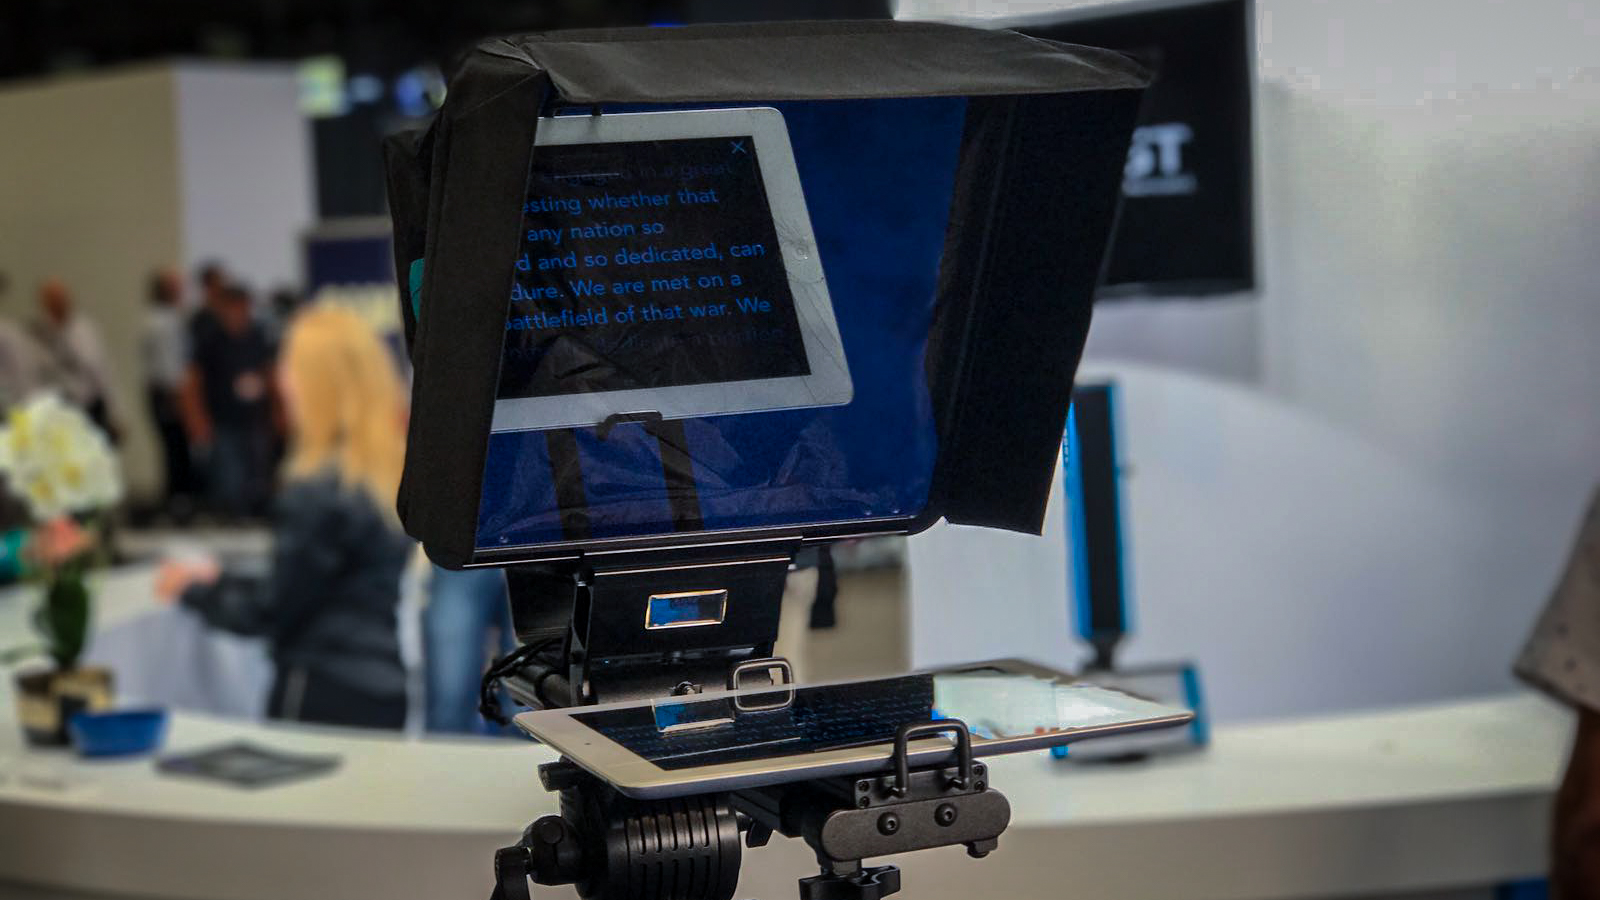 Dracast Magicue iPad Teleprompter with Voice-Recognition